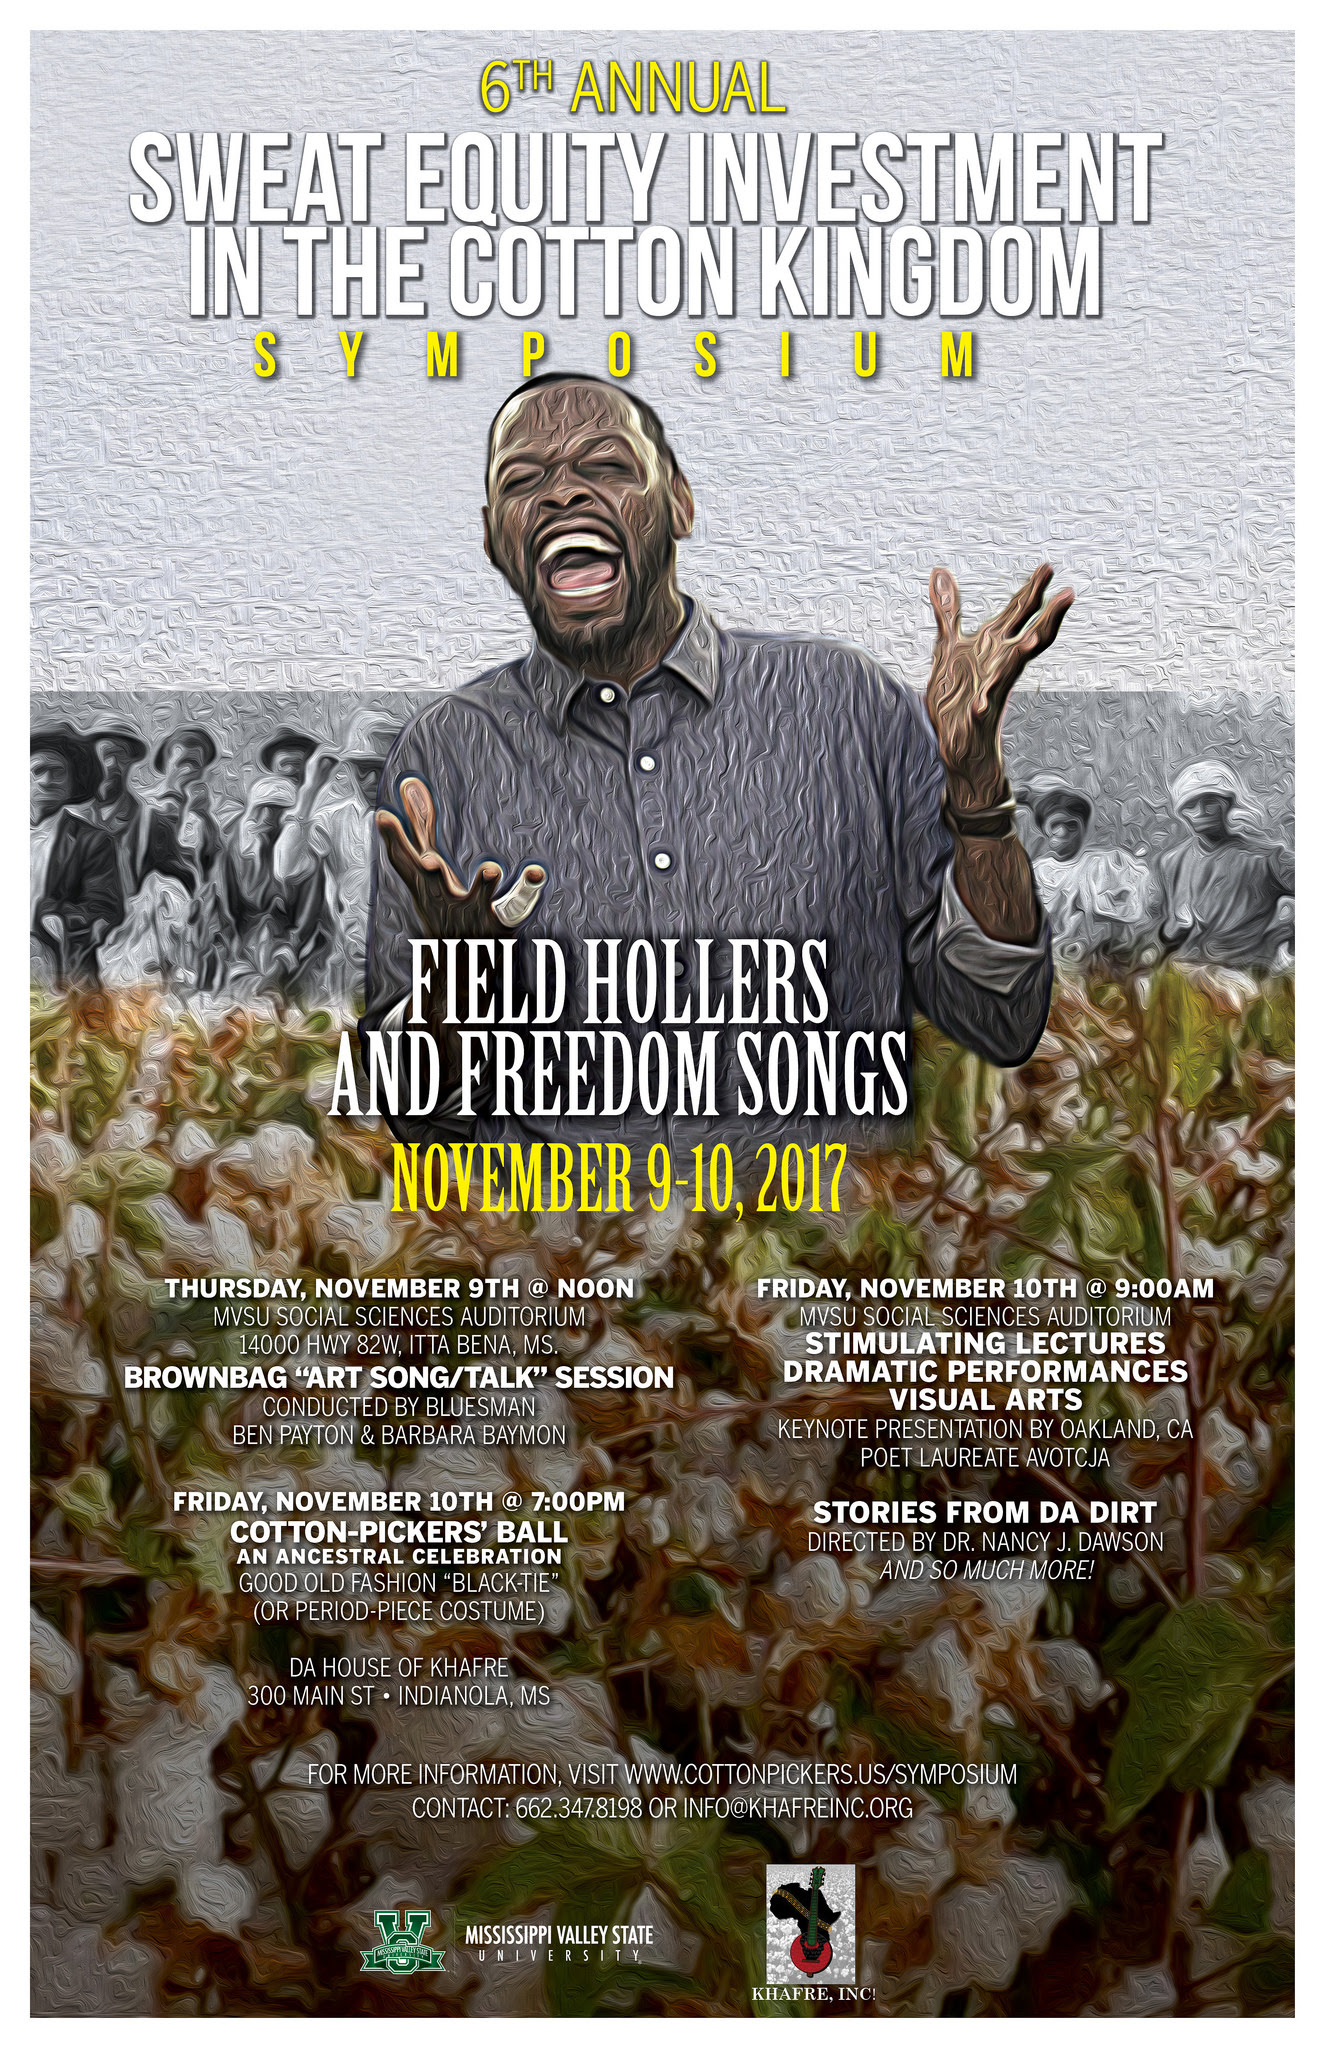 6th Annual Cotton Kingdom/Sweat Equity Symposium and Cotton Pickers' Ball